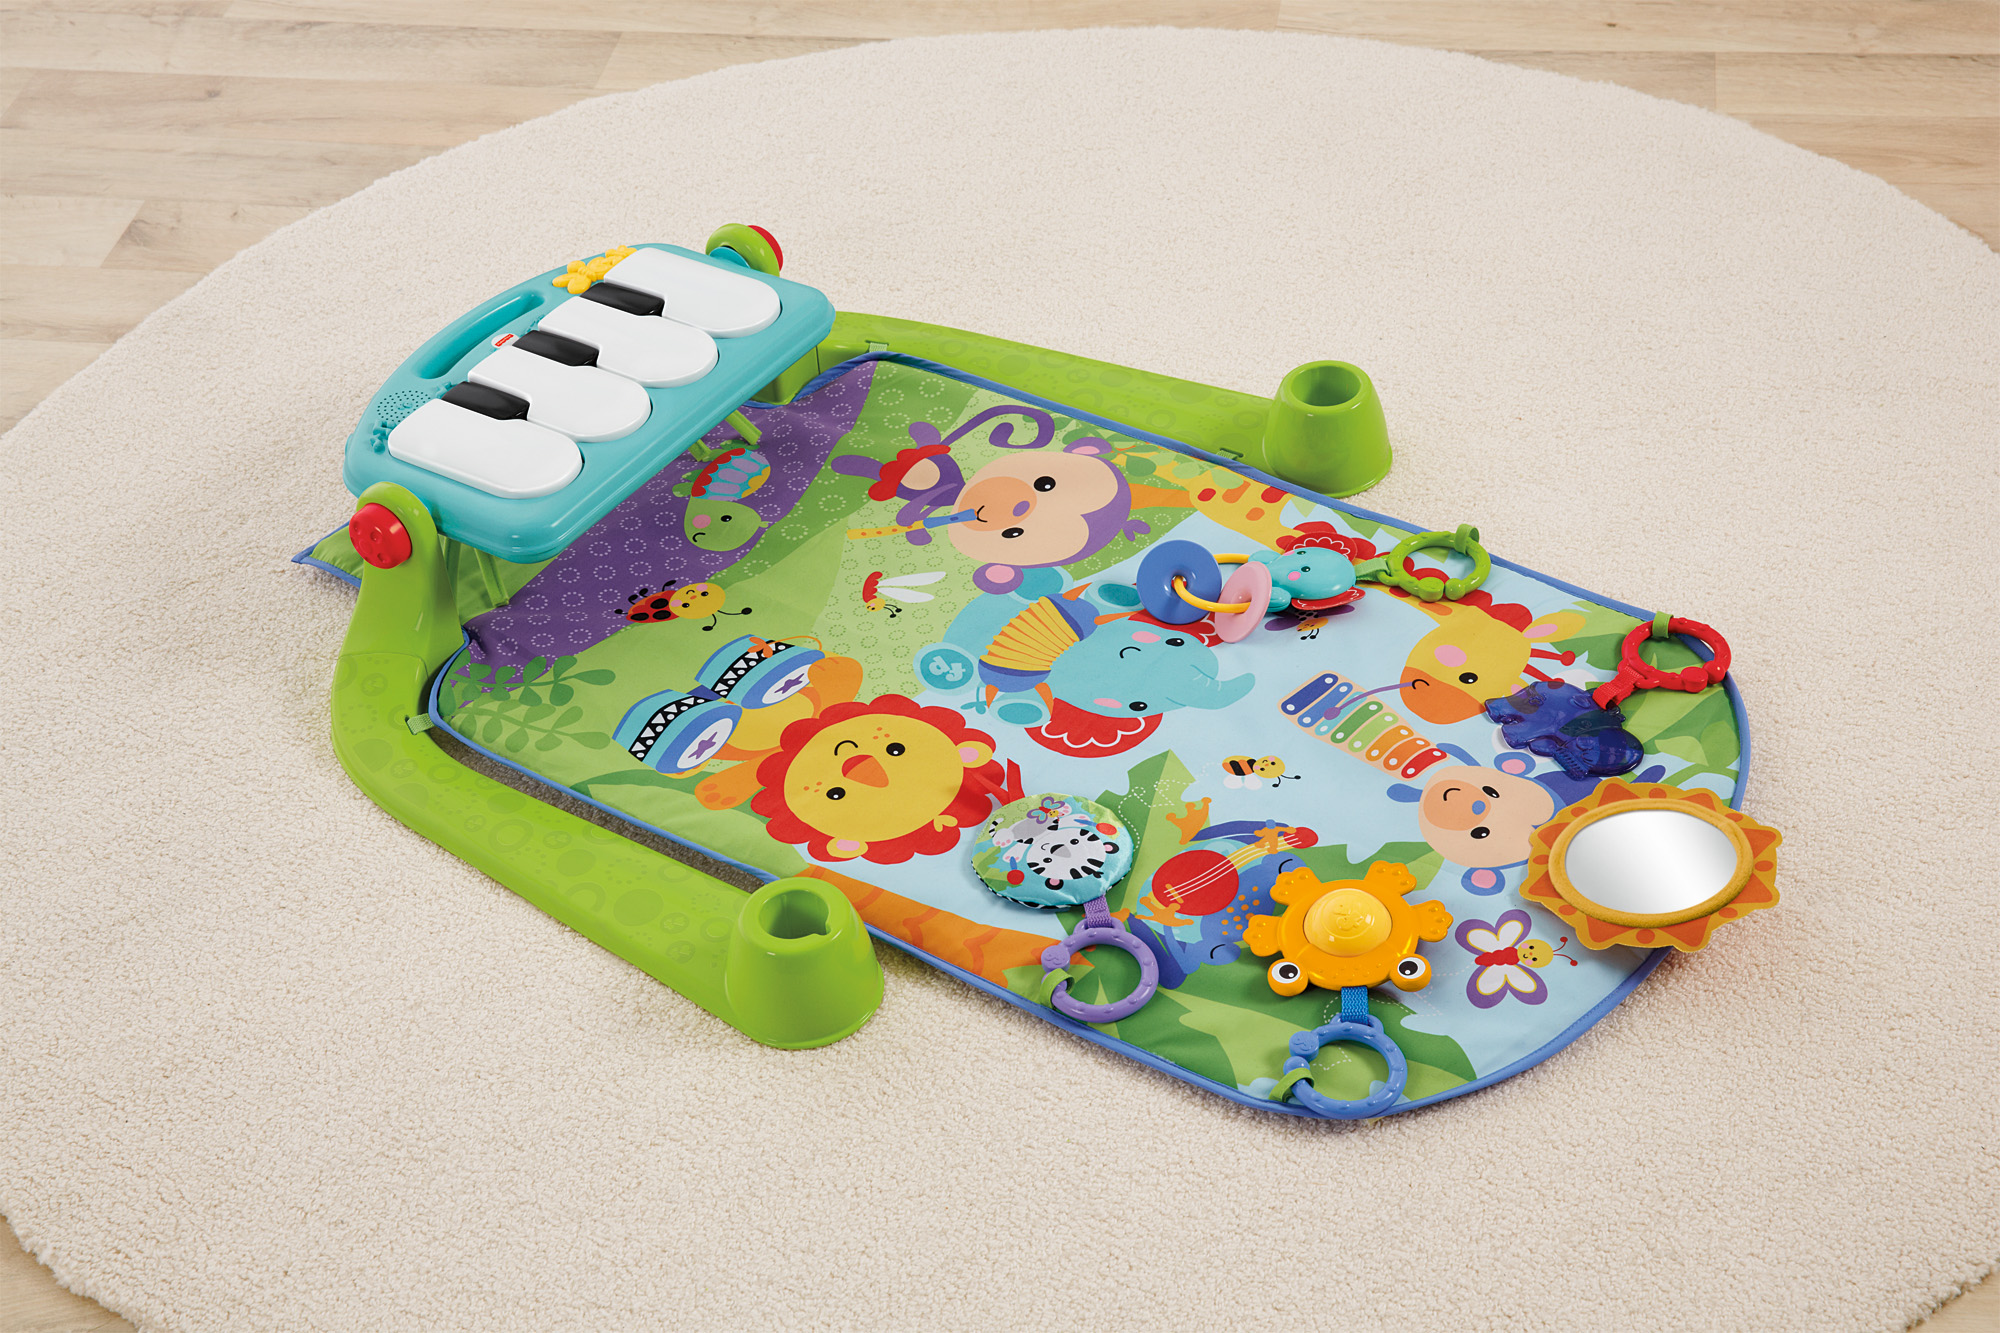 soft gym infant types quality amazon large carpet pad floors high s children play mat floor baby watch